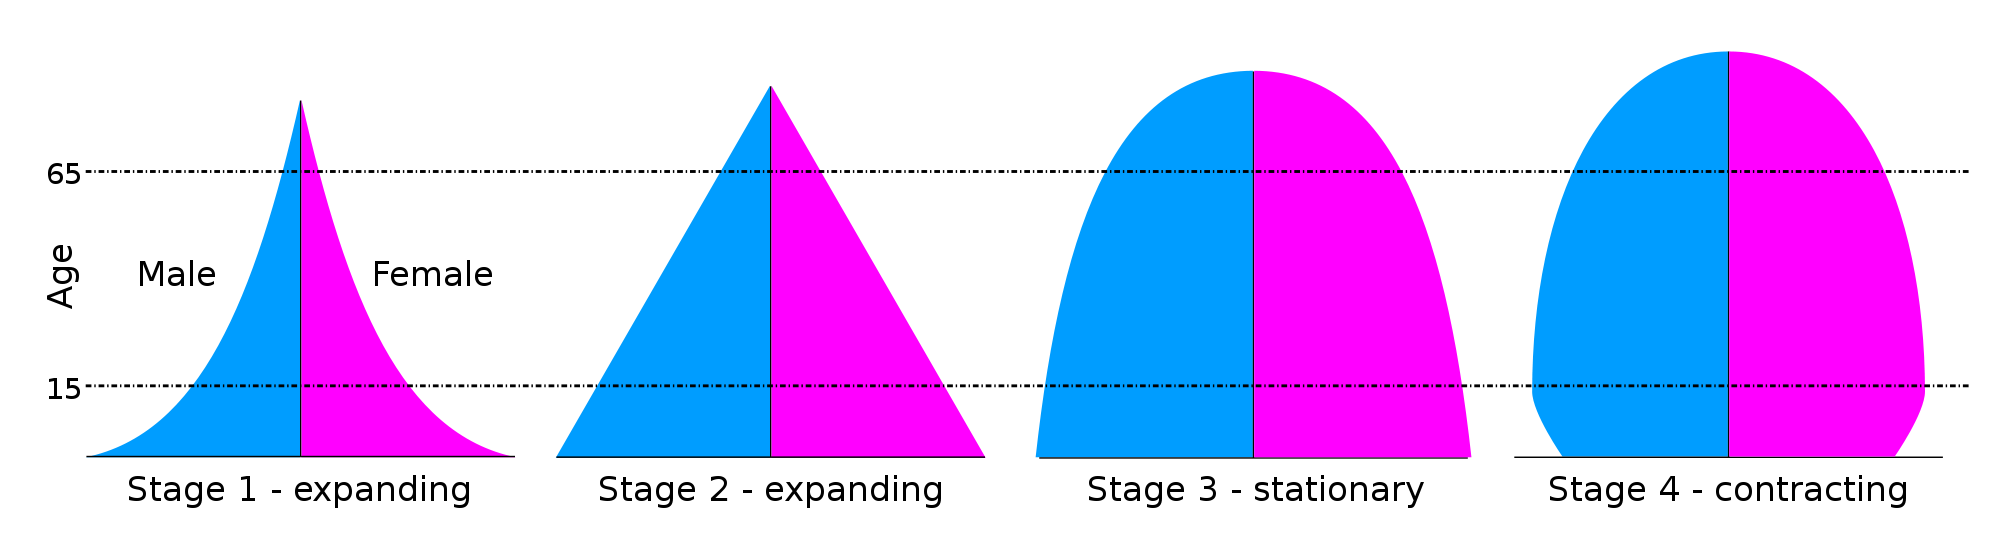 (http://upload.wikimedia.org/wikipedia/commons/thumb/1/17/DTM_Pyramids.svg/2000px-DTM_Pyramids.svg.png)